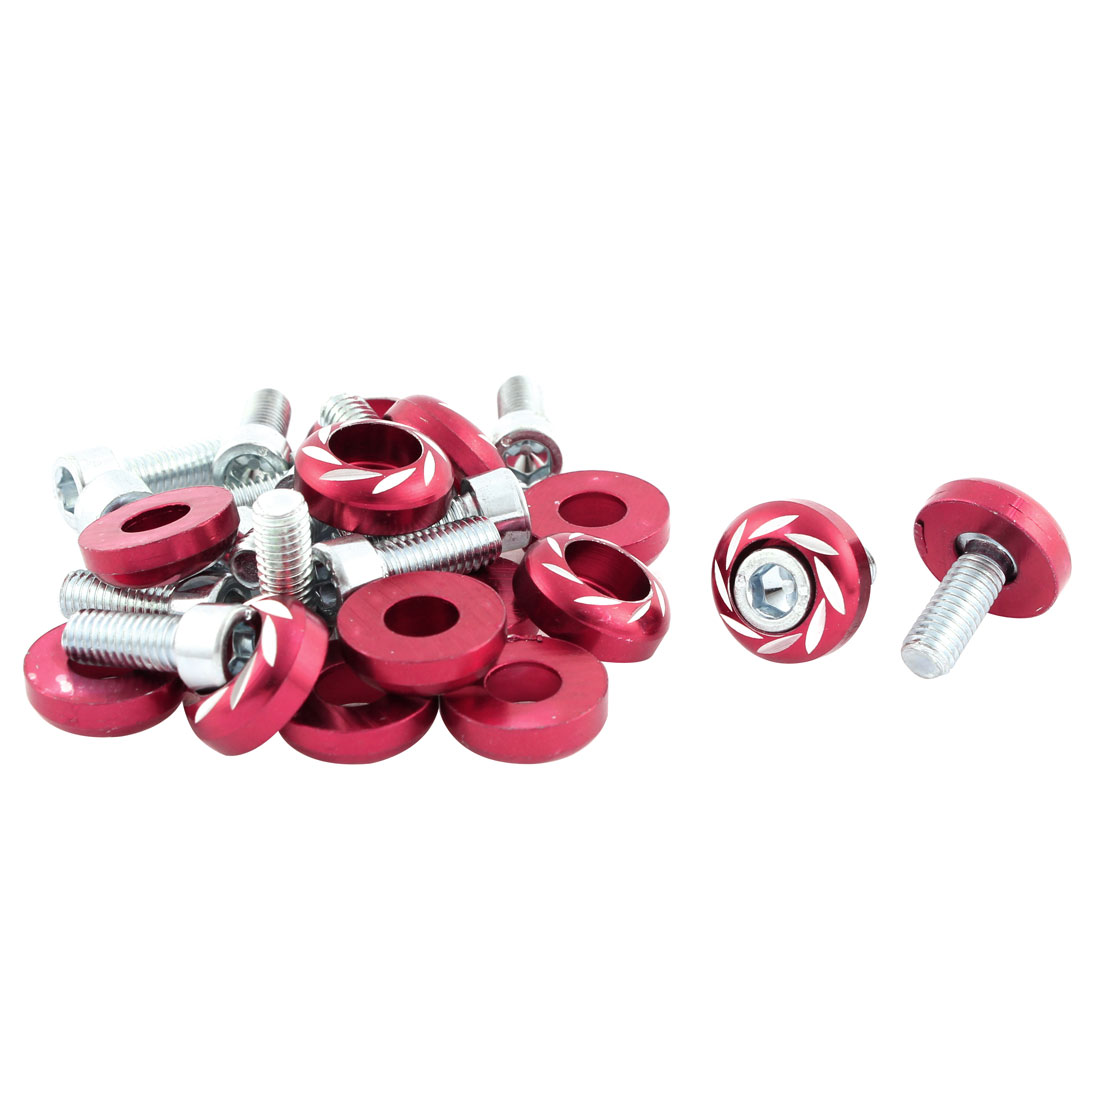 15 PCS Red Metal Hex Socket M6 Thread Dia Car License Plate Frame Bolt Screw